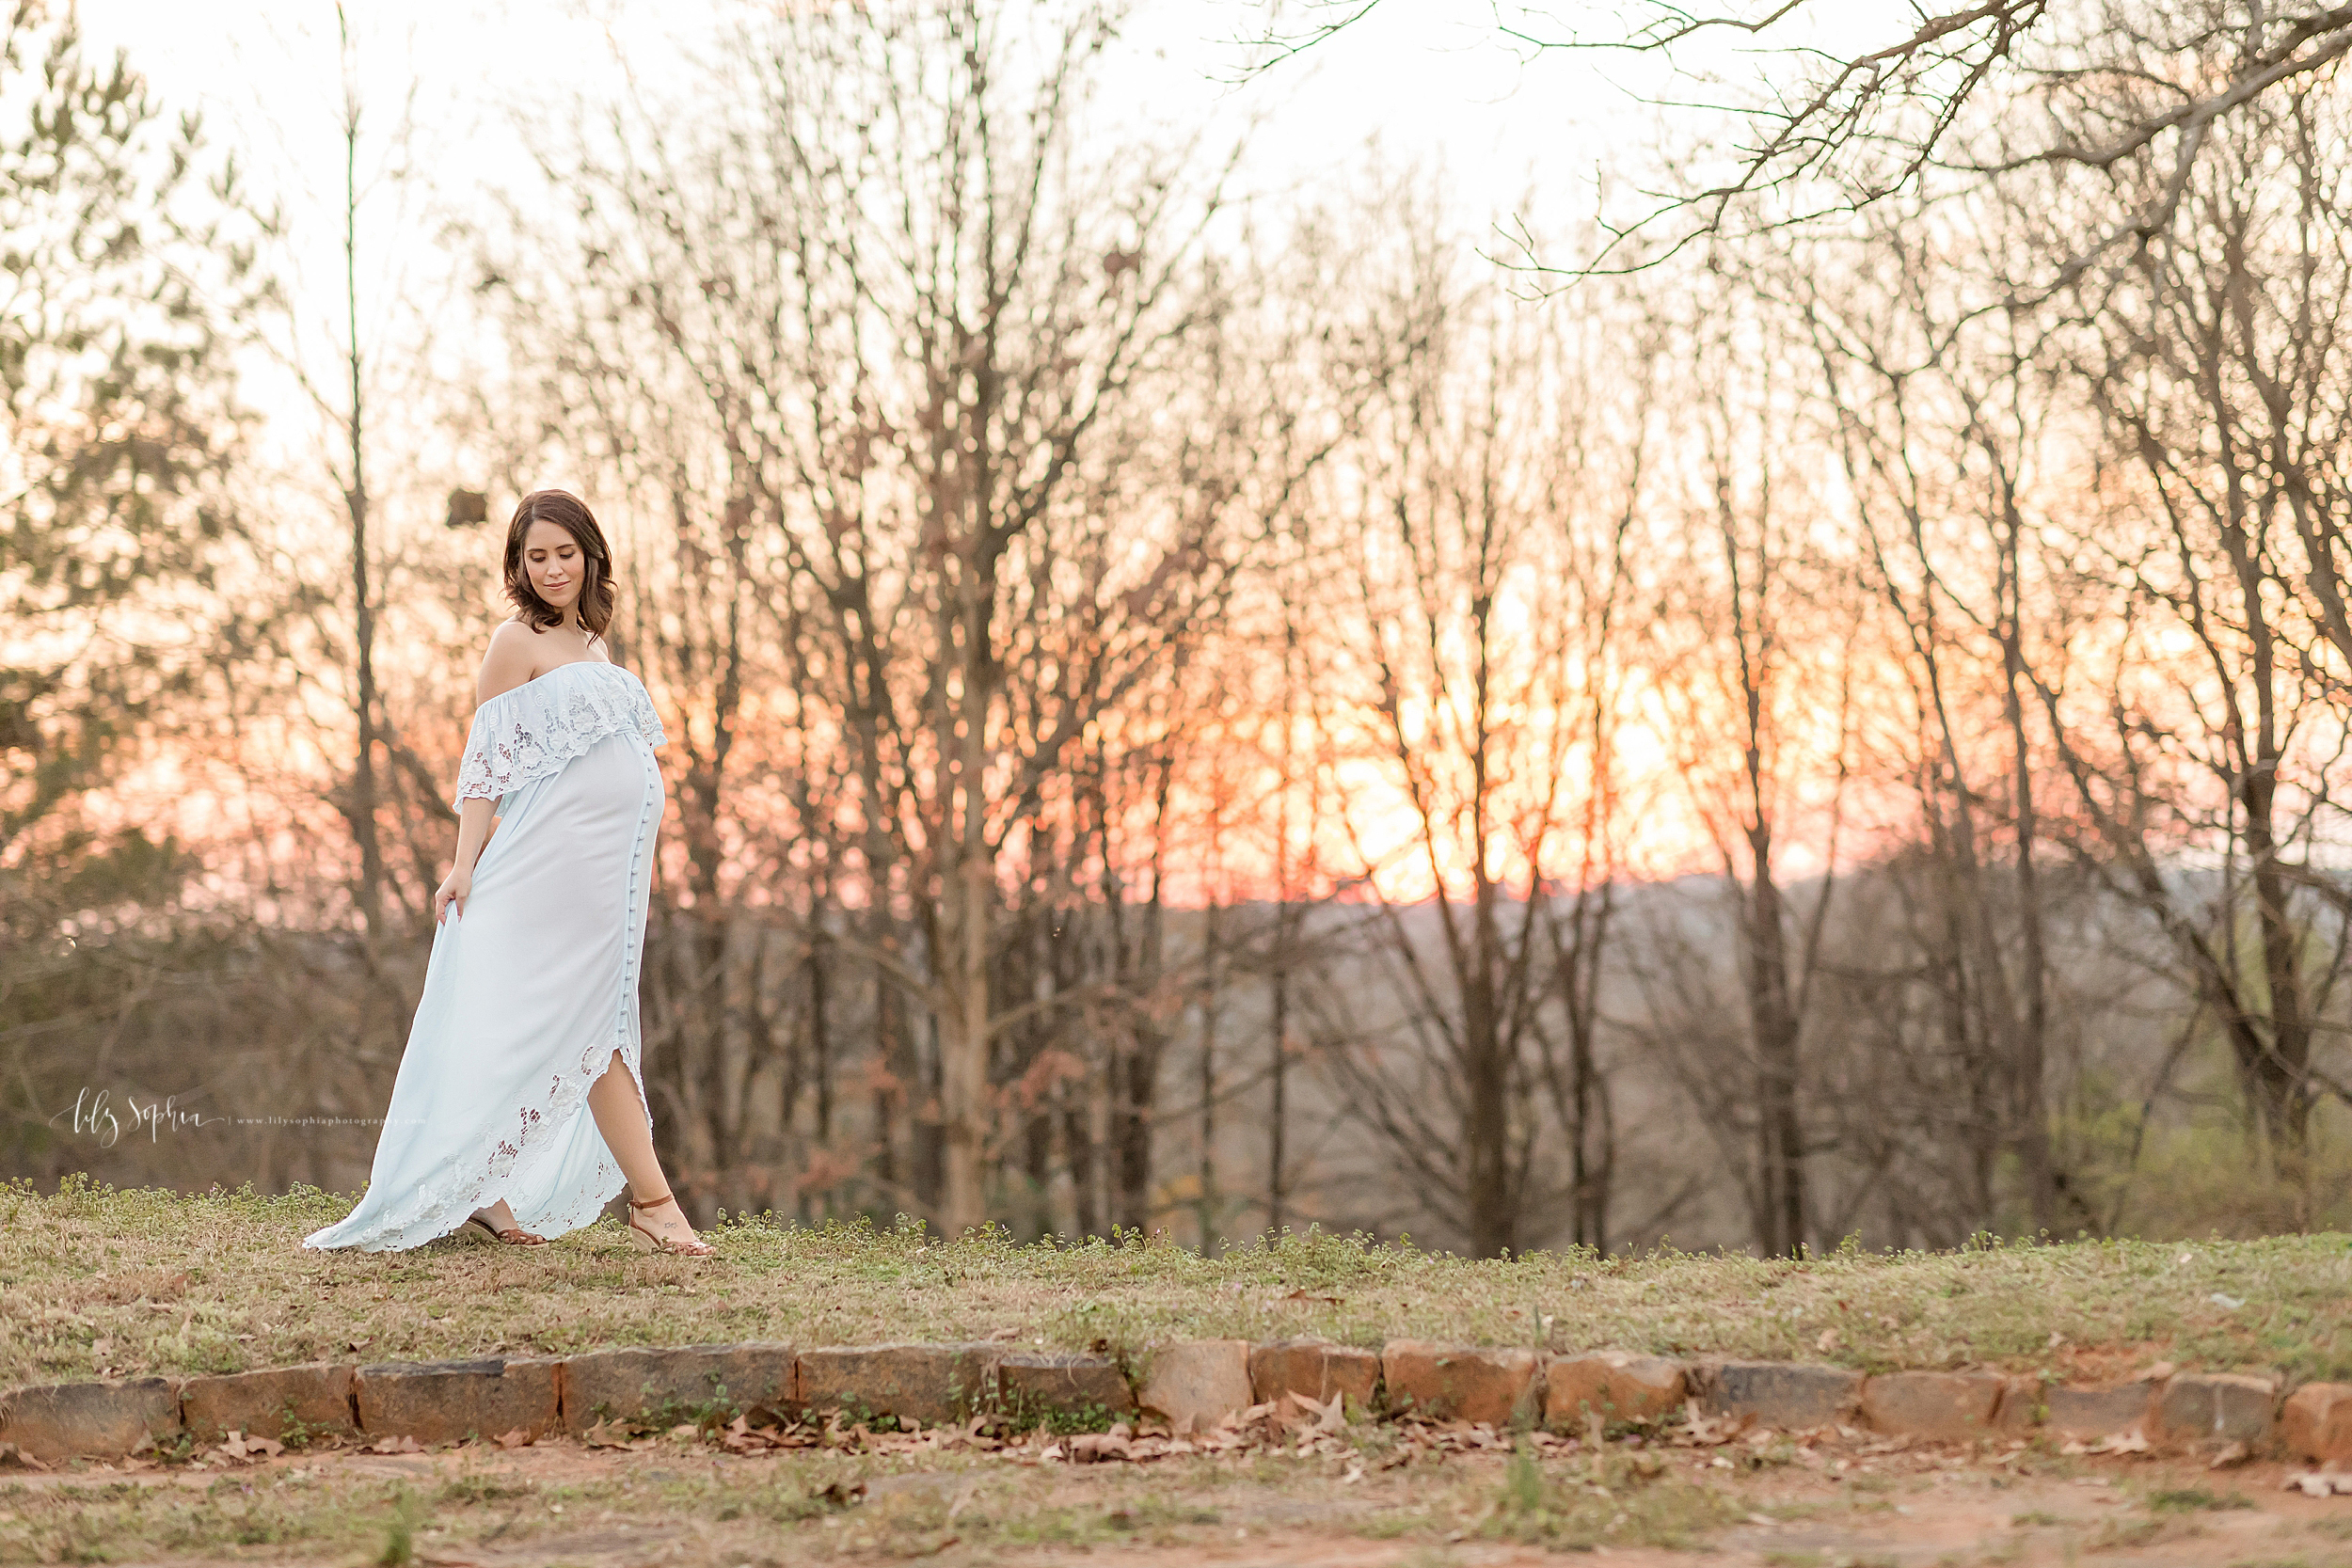 atlanta-sandy-springs-buckhead-virginia-highlands-smyrna-decatur-lily-sophia-photography-expecting-baby-girl-couples-maternity-session-sunset-park_0915.jpg